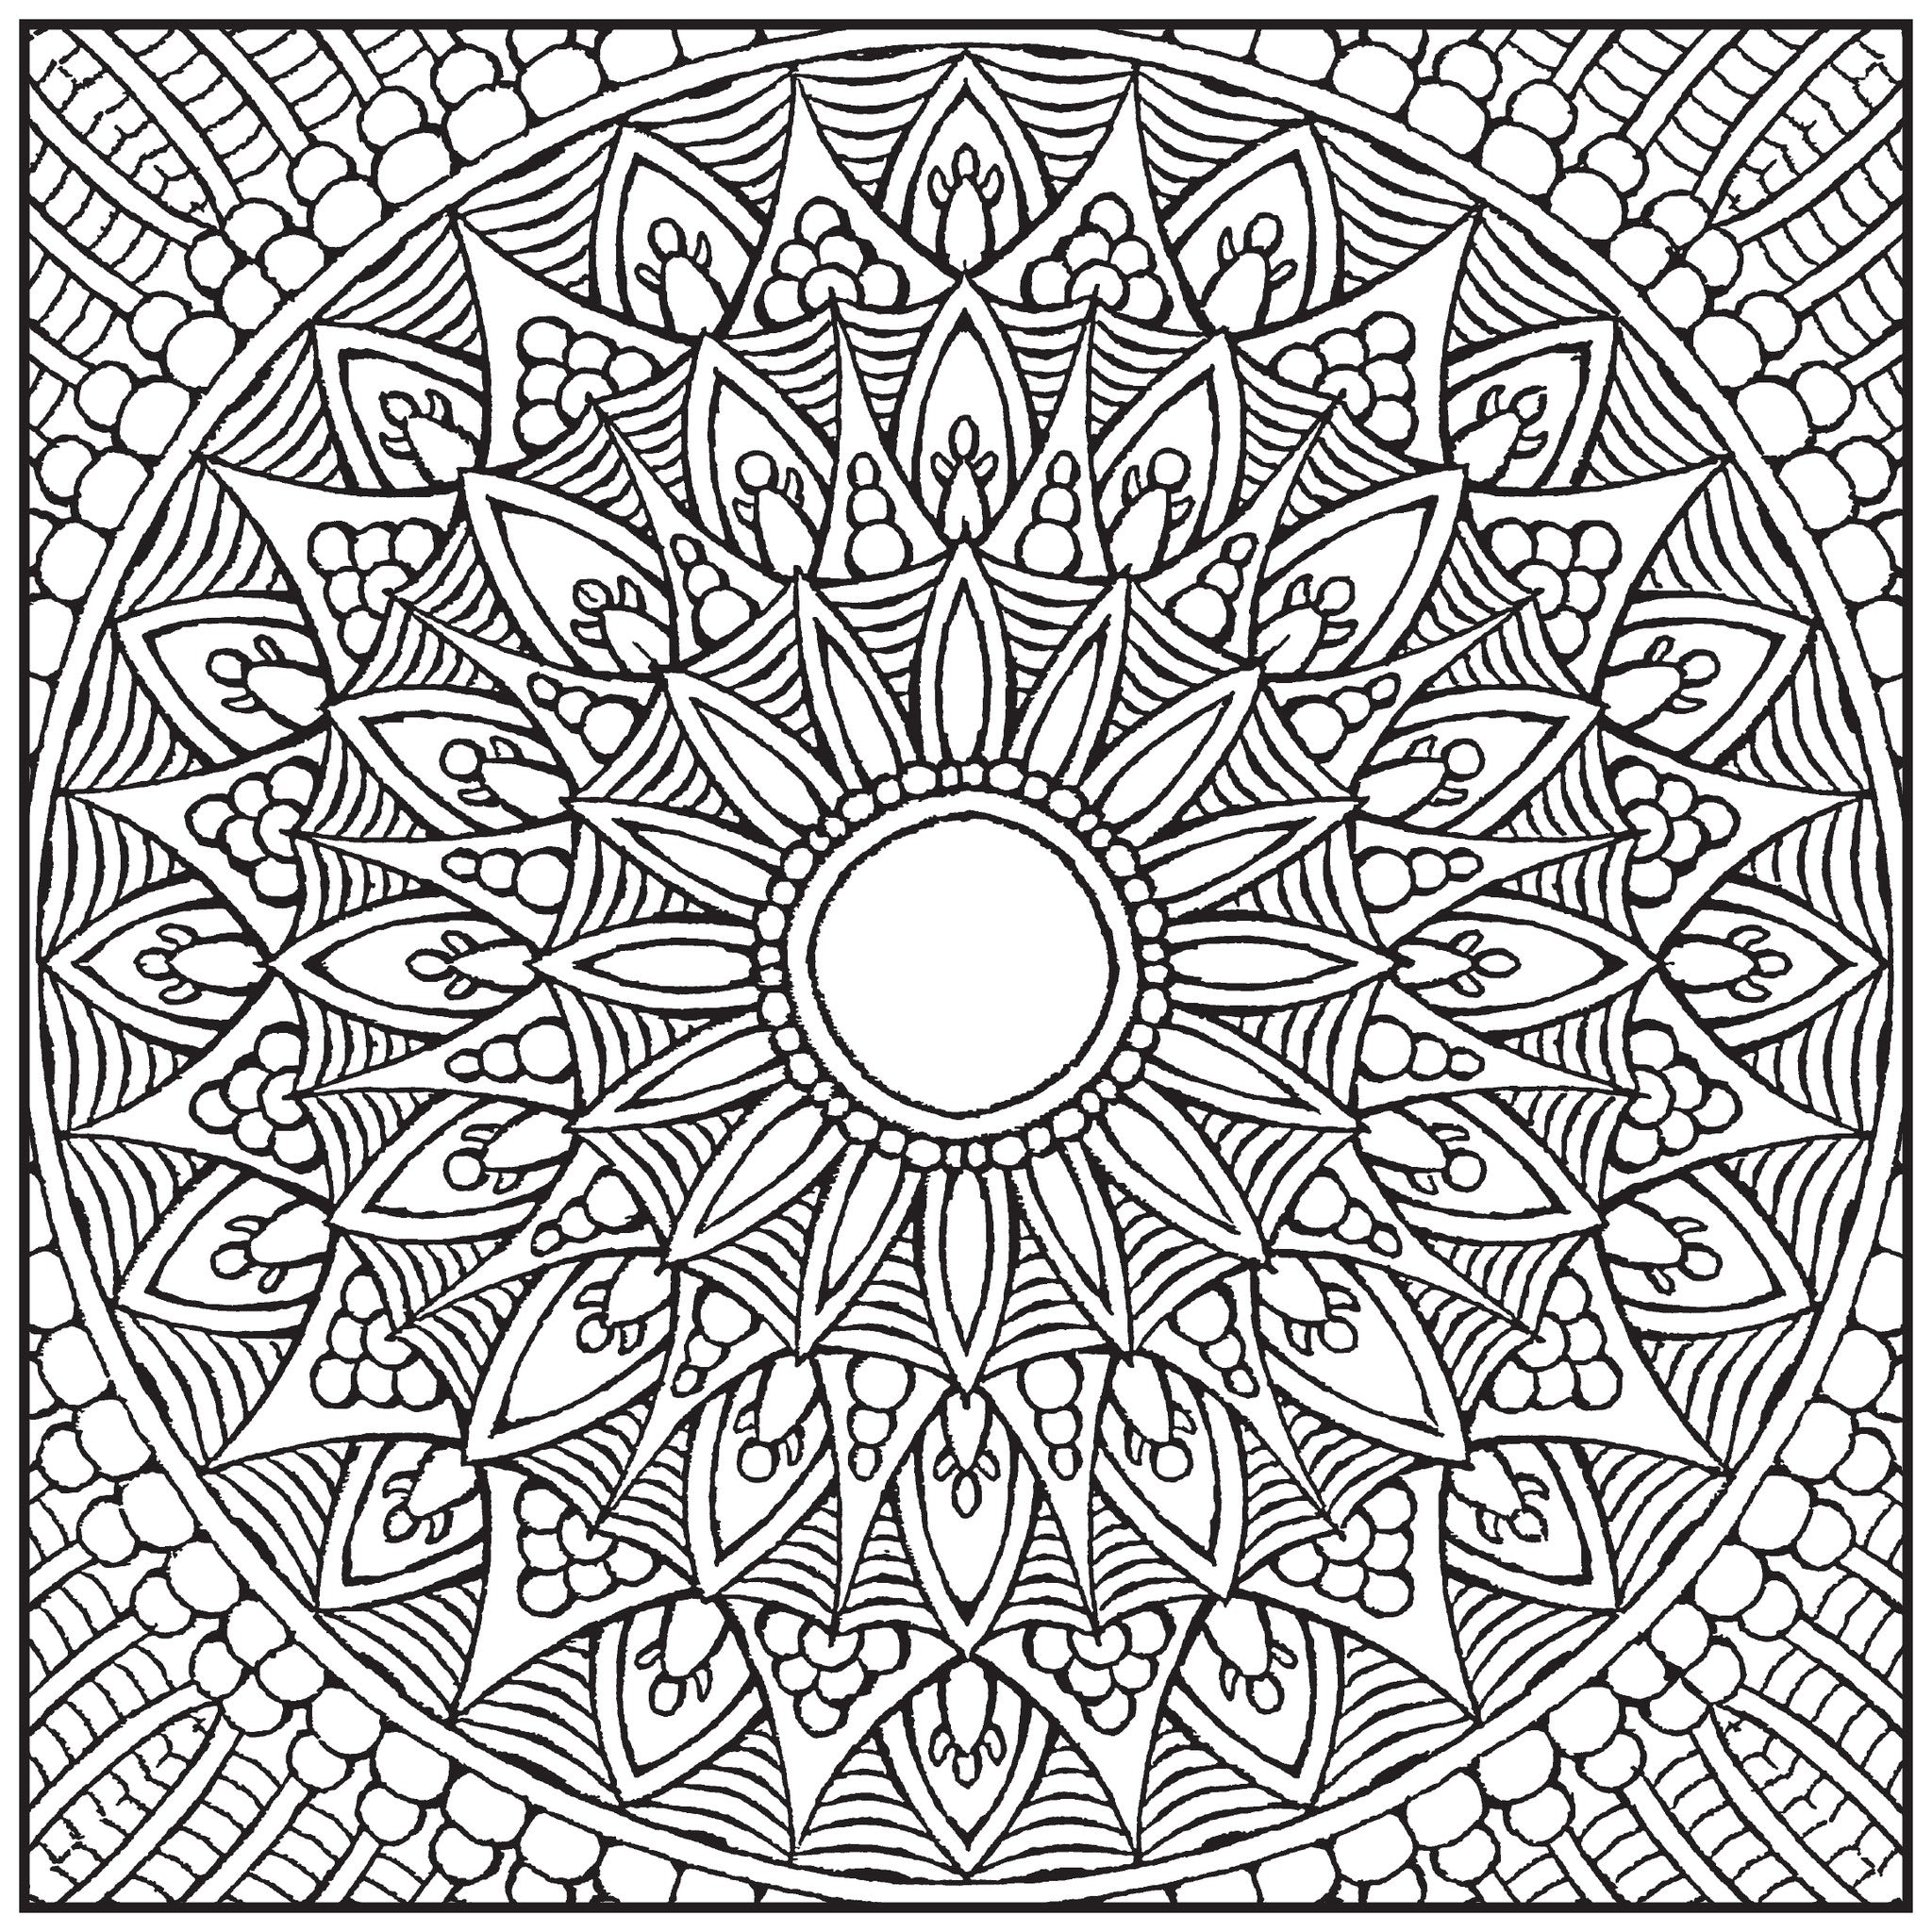 Coloring book color of art -  Color With Music Mandalas Adult Coloring Book Blank Page